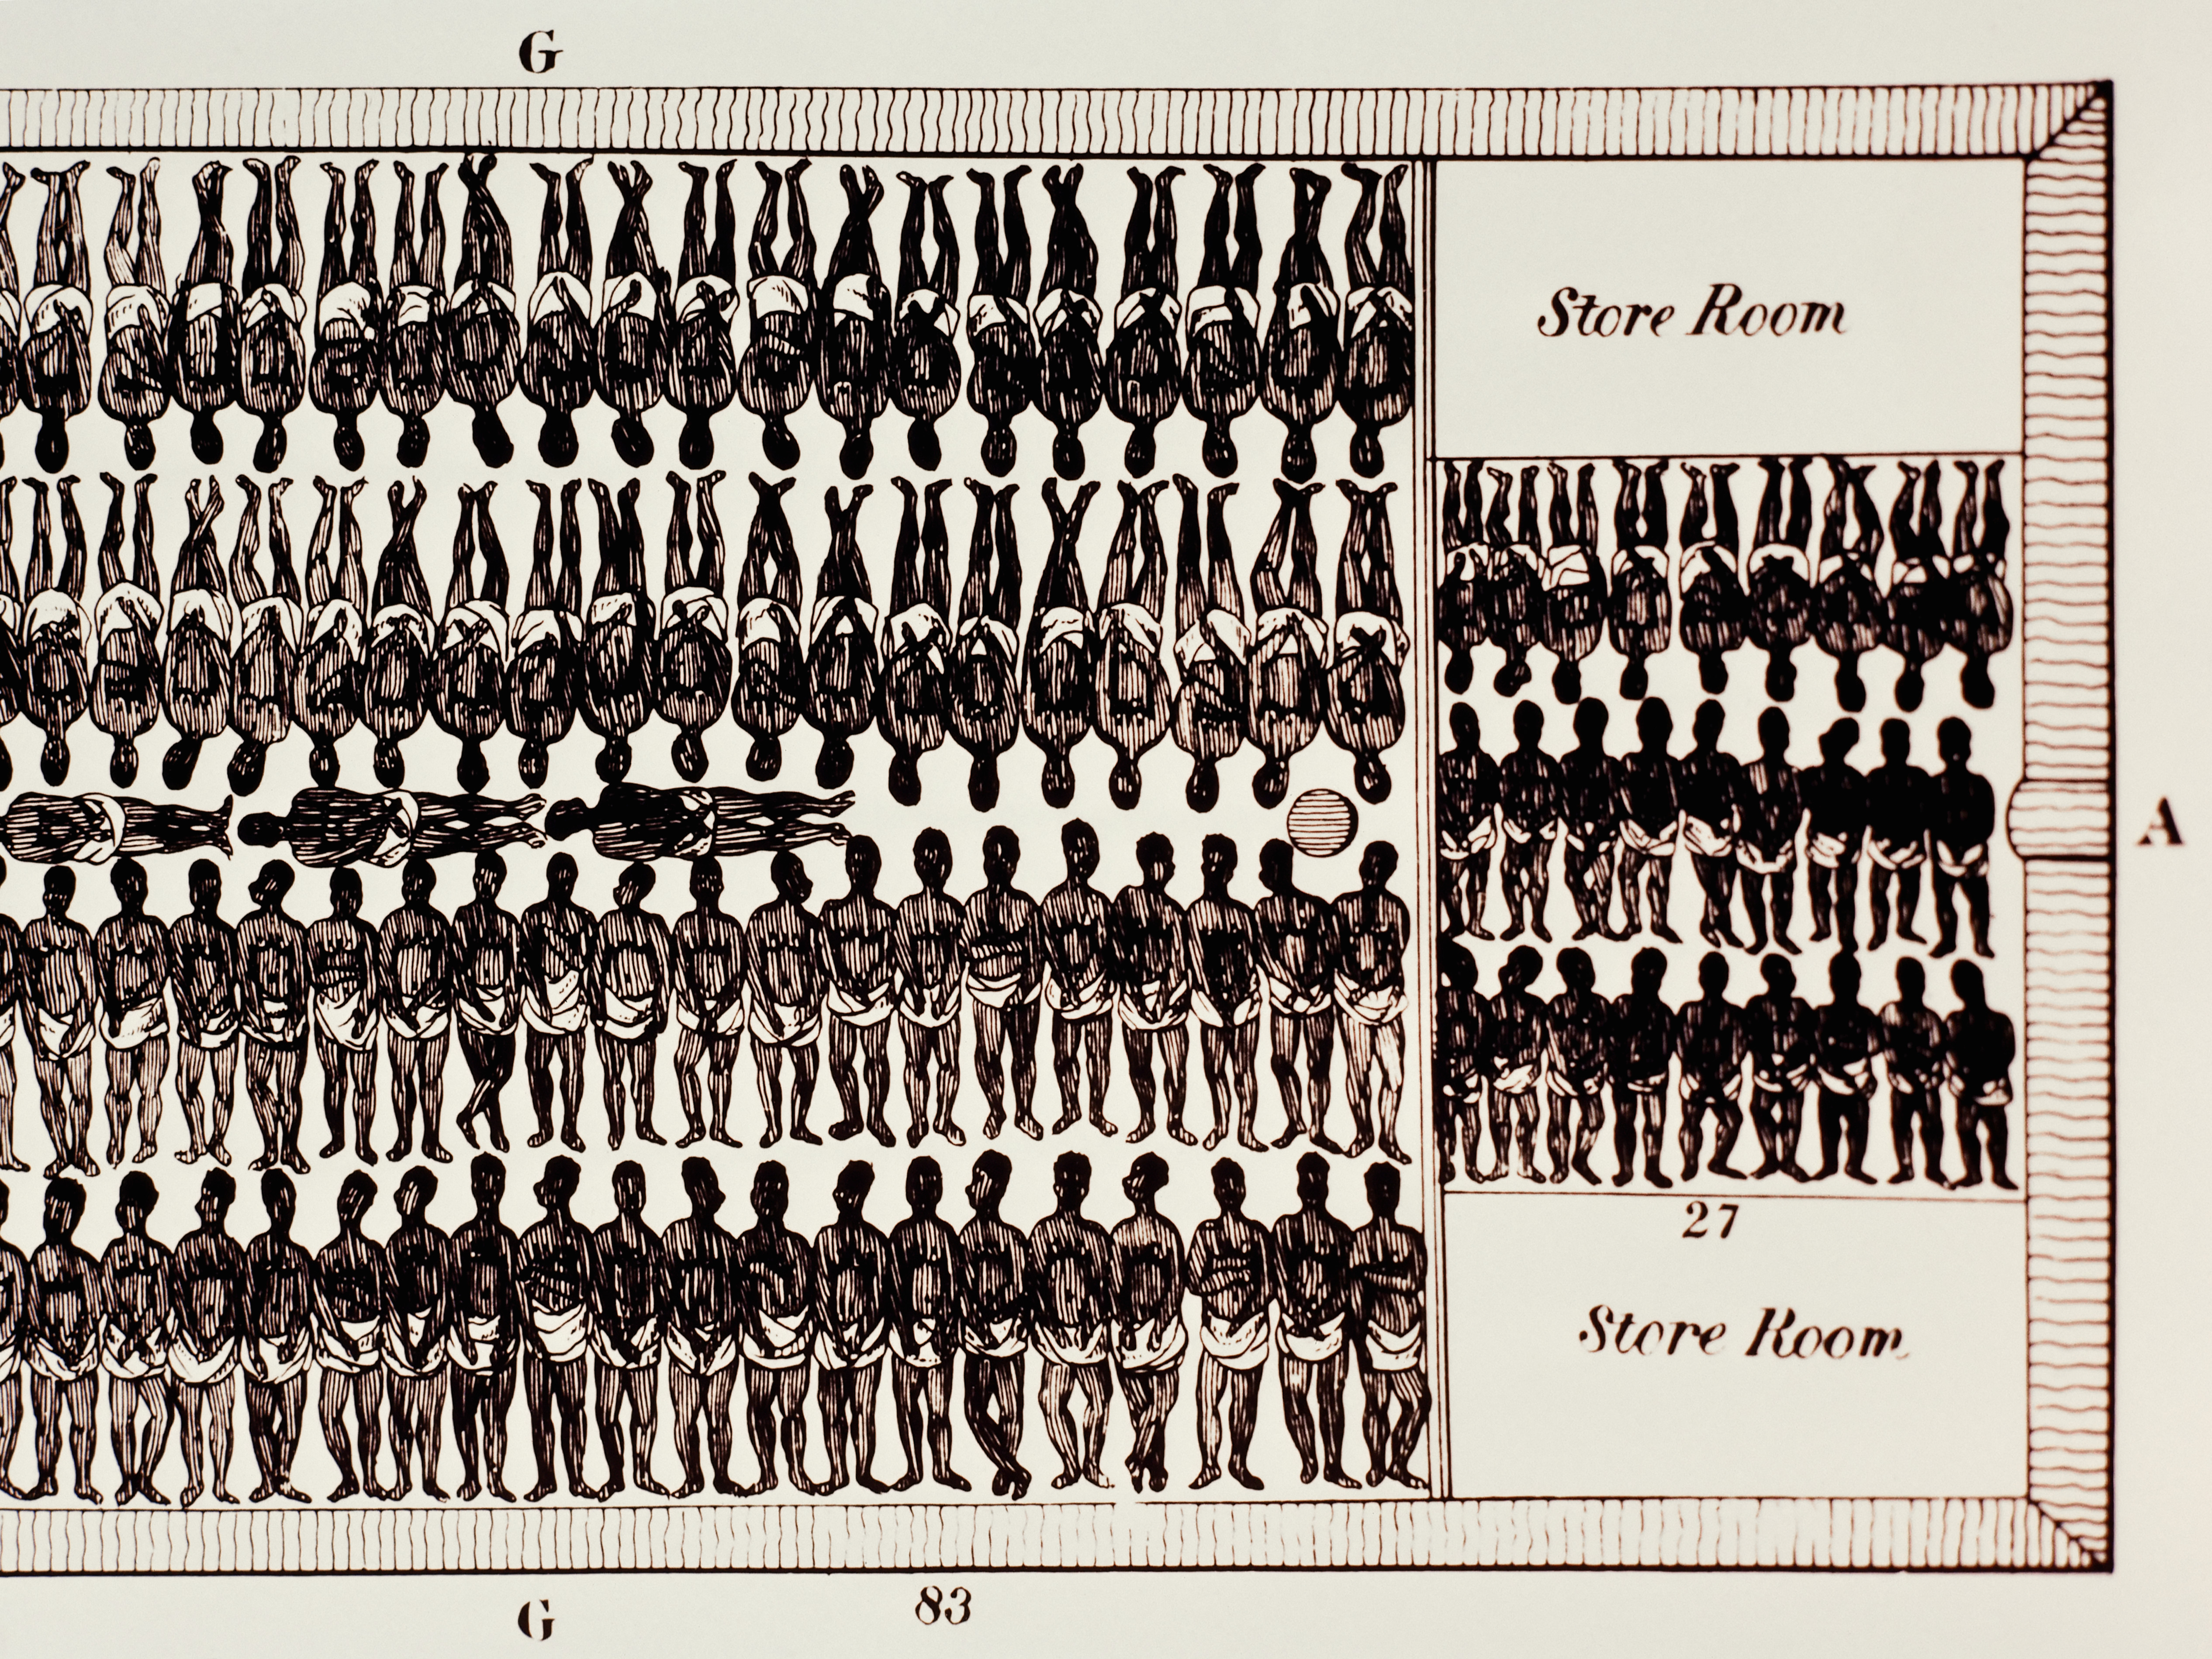 the origins and history of slavery History of slavery in america  one of the first black indentured servants to slavery john  wwwslaveryinamericaorg/history/hs_es_overview.